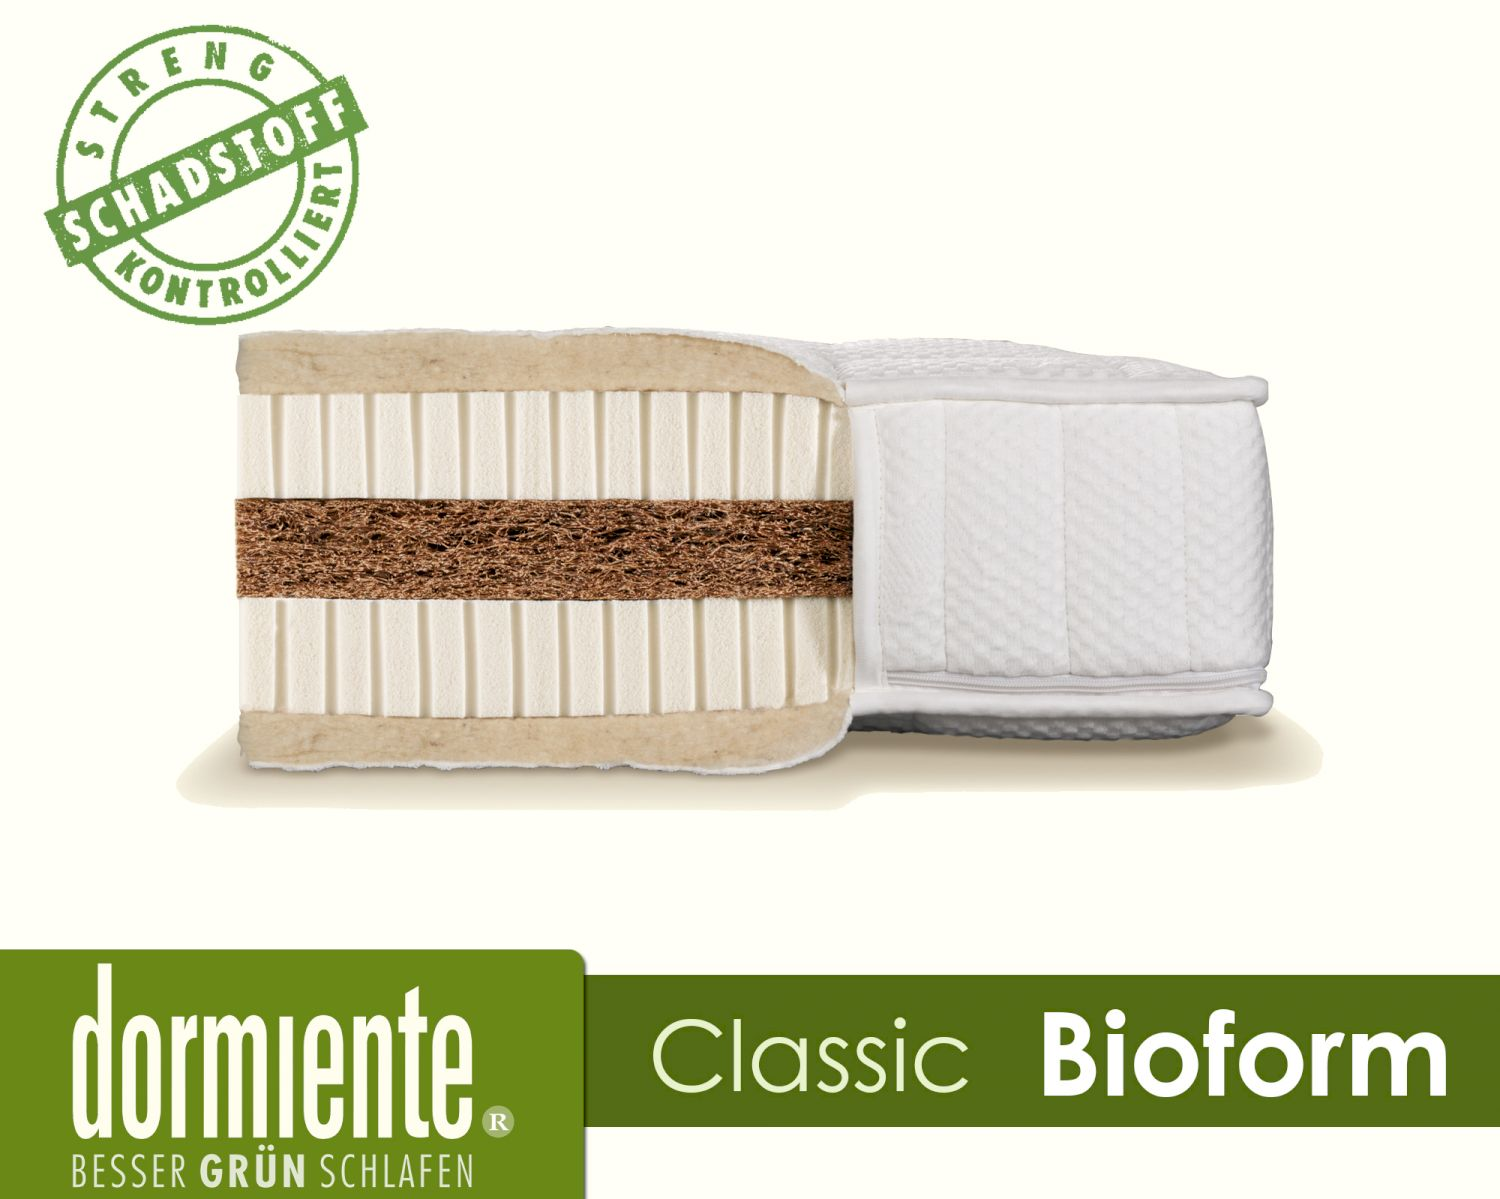 Latex Matratze Dormiente Natural Classic Bioform Latex Matratzen